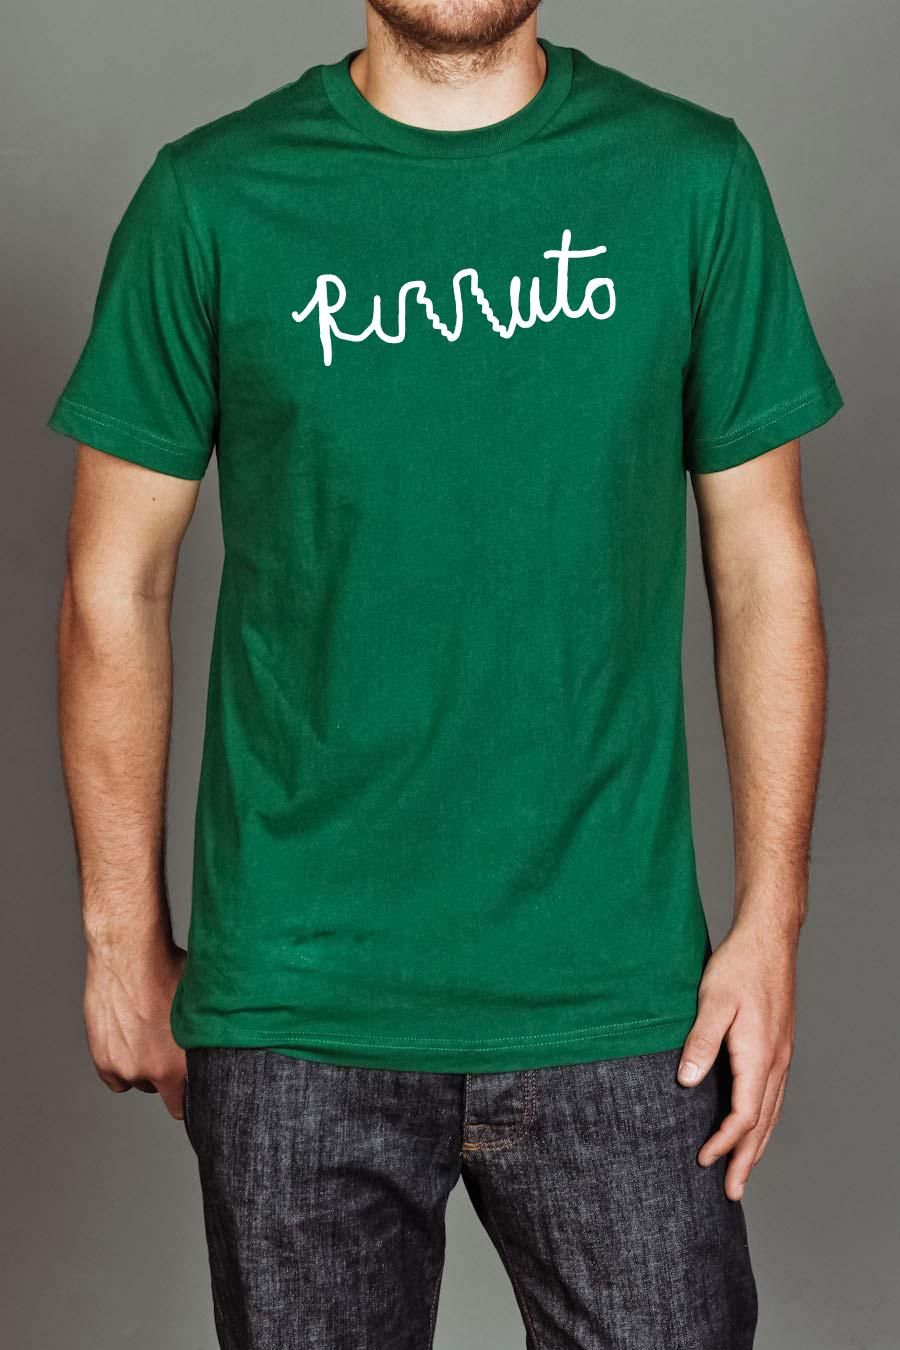 c3c77abe Busted Tees Rirruto Tee $20 THAT'S NOT A WORD, IT'S A BASEBALL PLAYER!